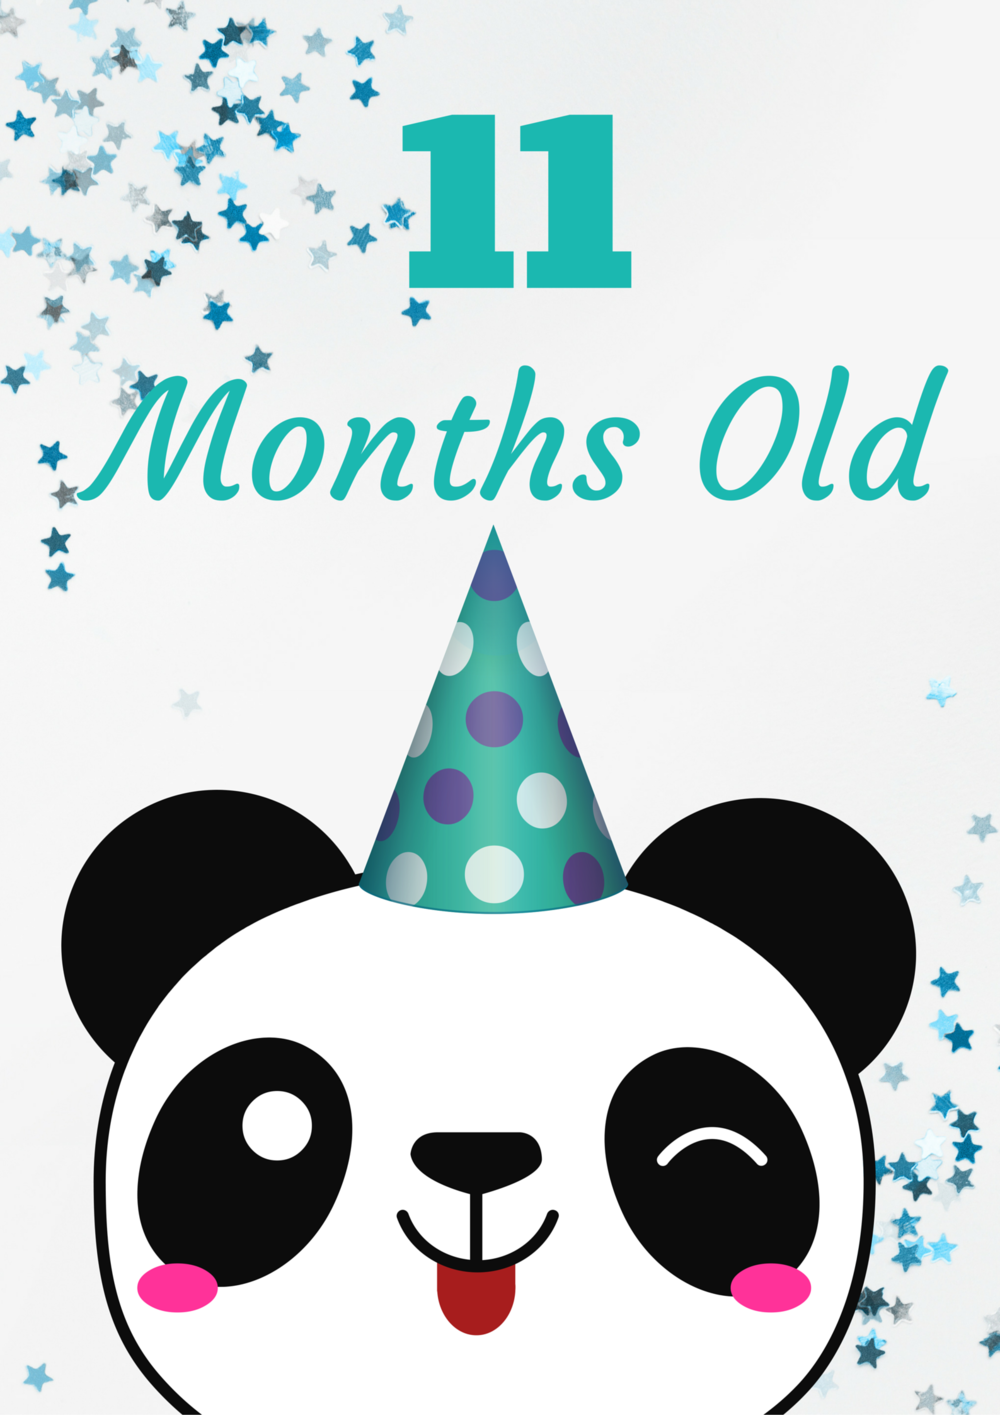 Panda Invasion! Free Printable Baby Monthly Milestone. Mca Stroke Signs. November 24th Signs Of Stroke. Assembly Signs. Competition Signs. Magnesium Signs. Drama Signs. Regulation Signs. No Smoking Signs Of Stroke